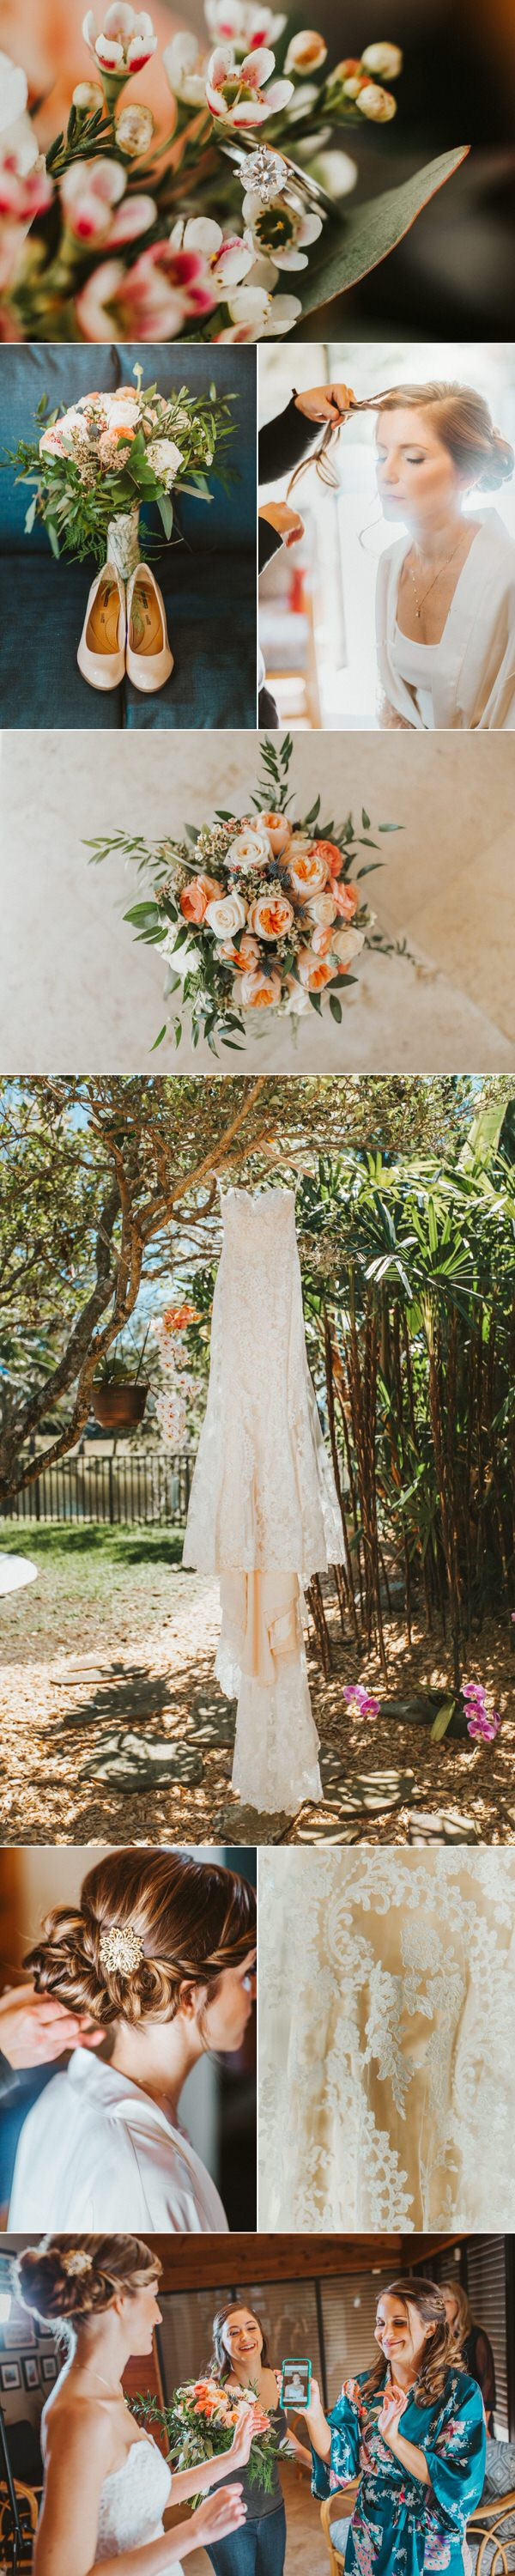 Winter Park farmers market wedding- bohemian chic floral wedding photography by Shaina DeCiryan1.jpg